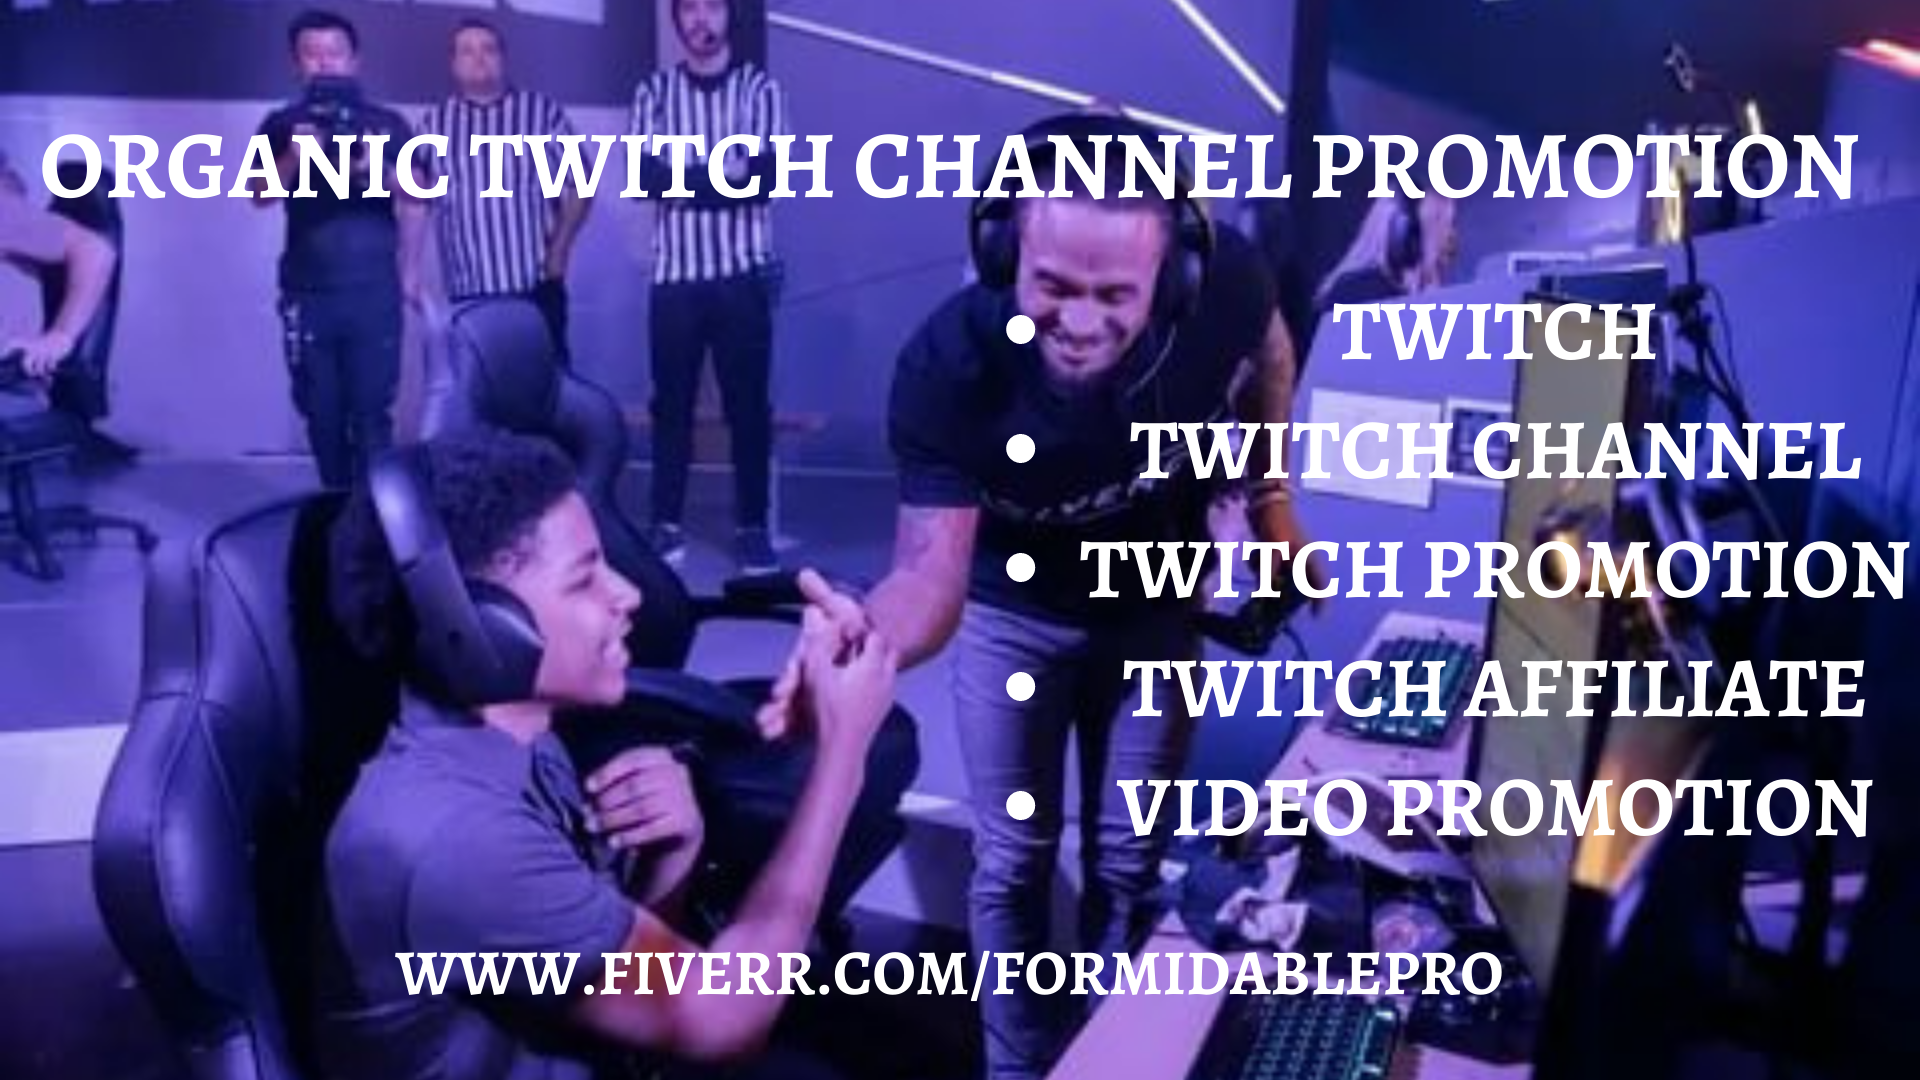 I will do organic twitch promotion to real and active audience, FiverrBox